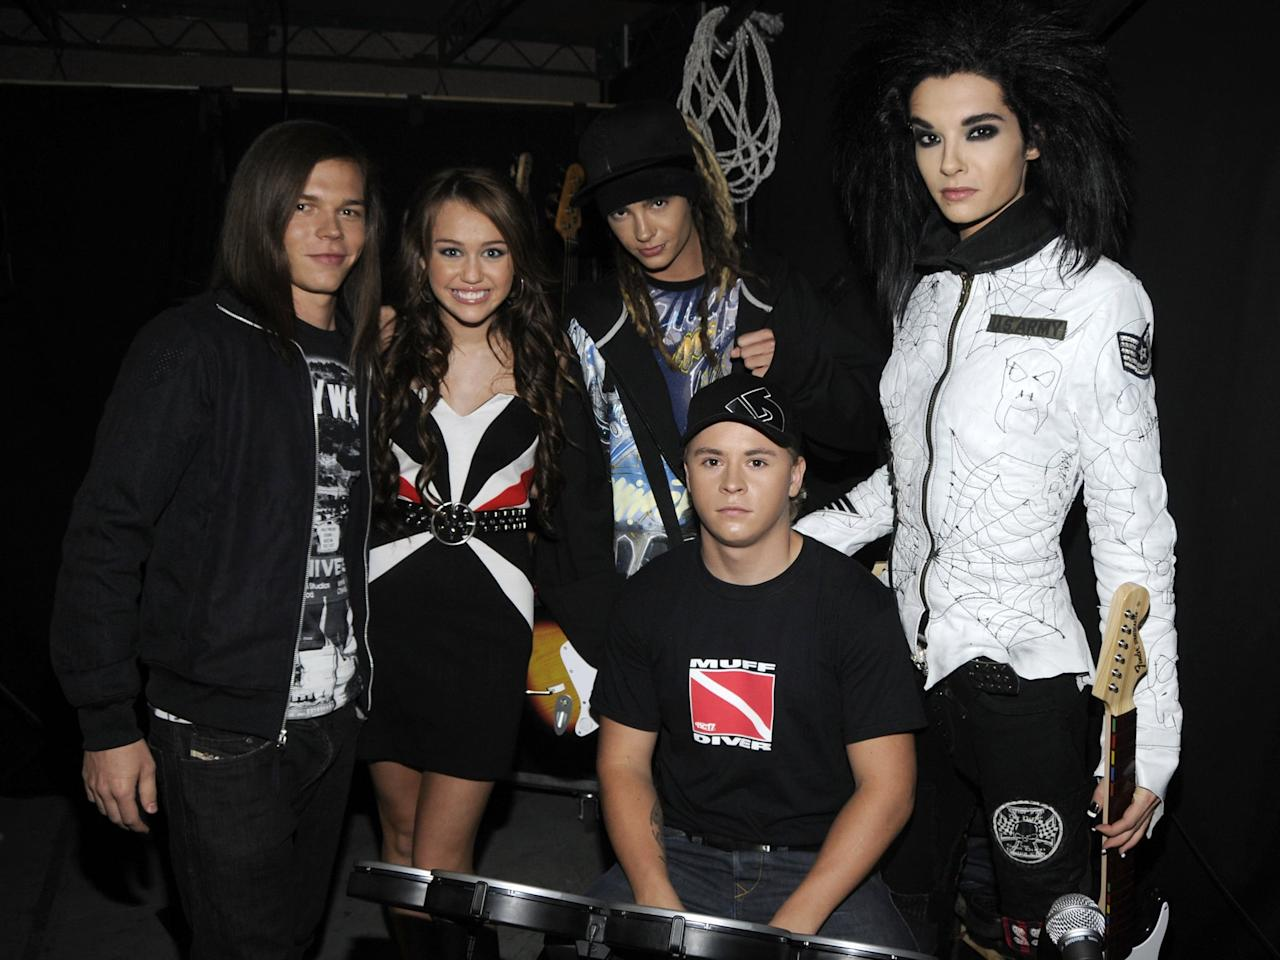 <p>Although Miley lost out to Tokio Hotel for best new artist, she posed for a picture with the group backstage. </p>